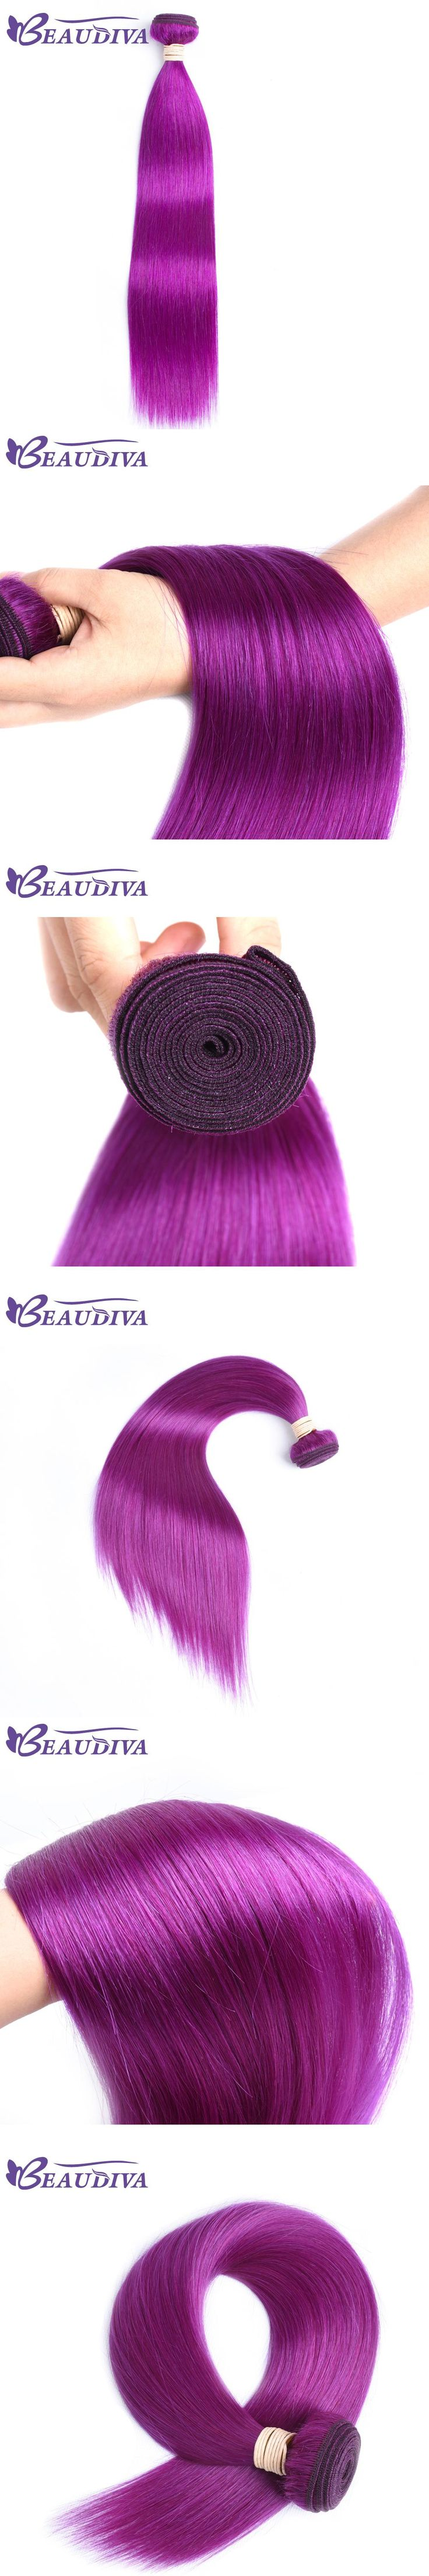 BEAUDIVA Pre-Colored Human Remy Hair Weave Straight Purple Color Remy Hair Bundles 10-24inch